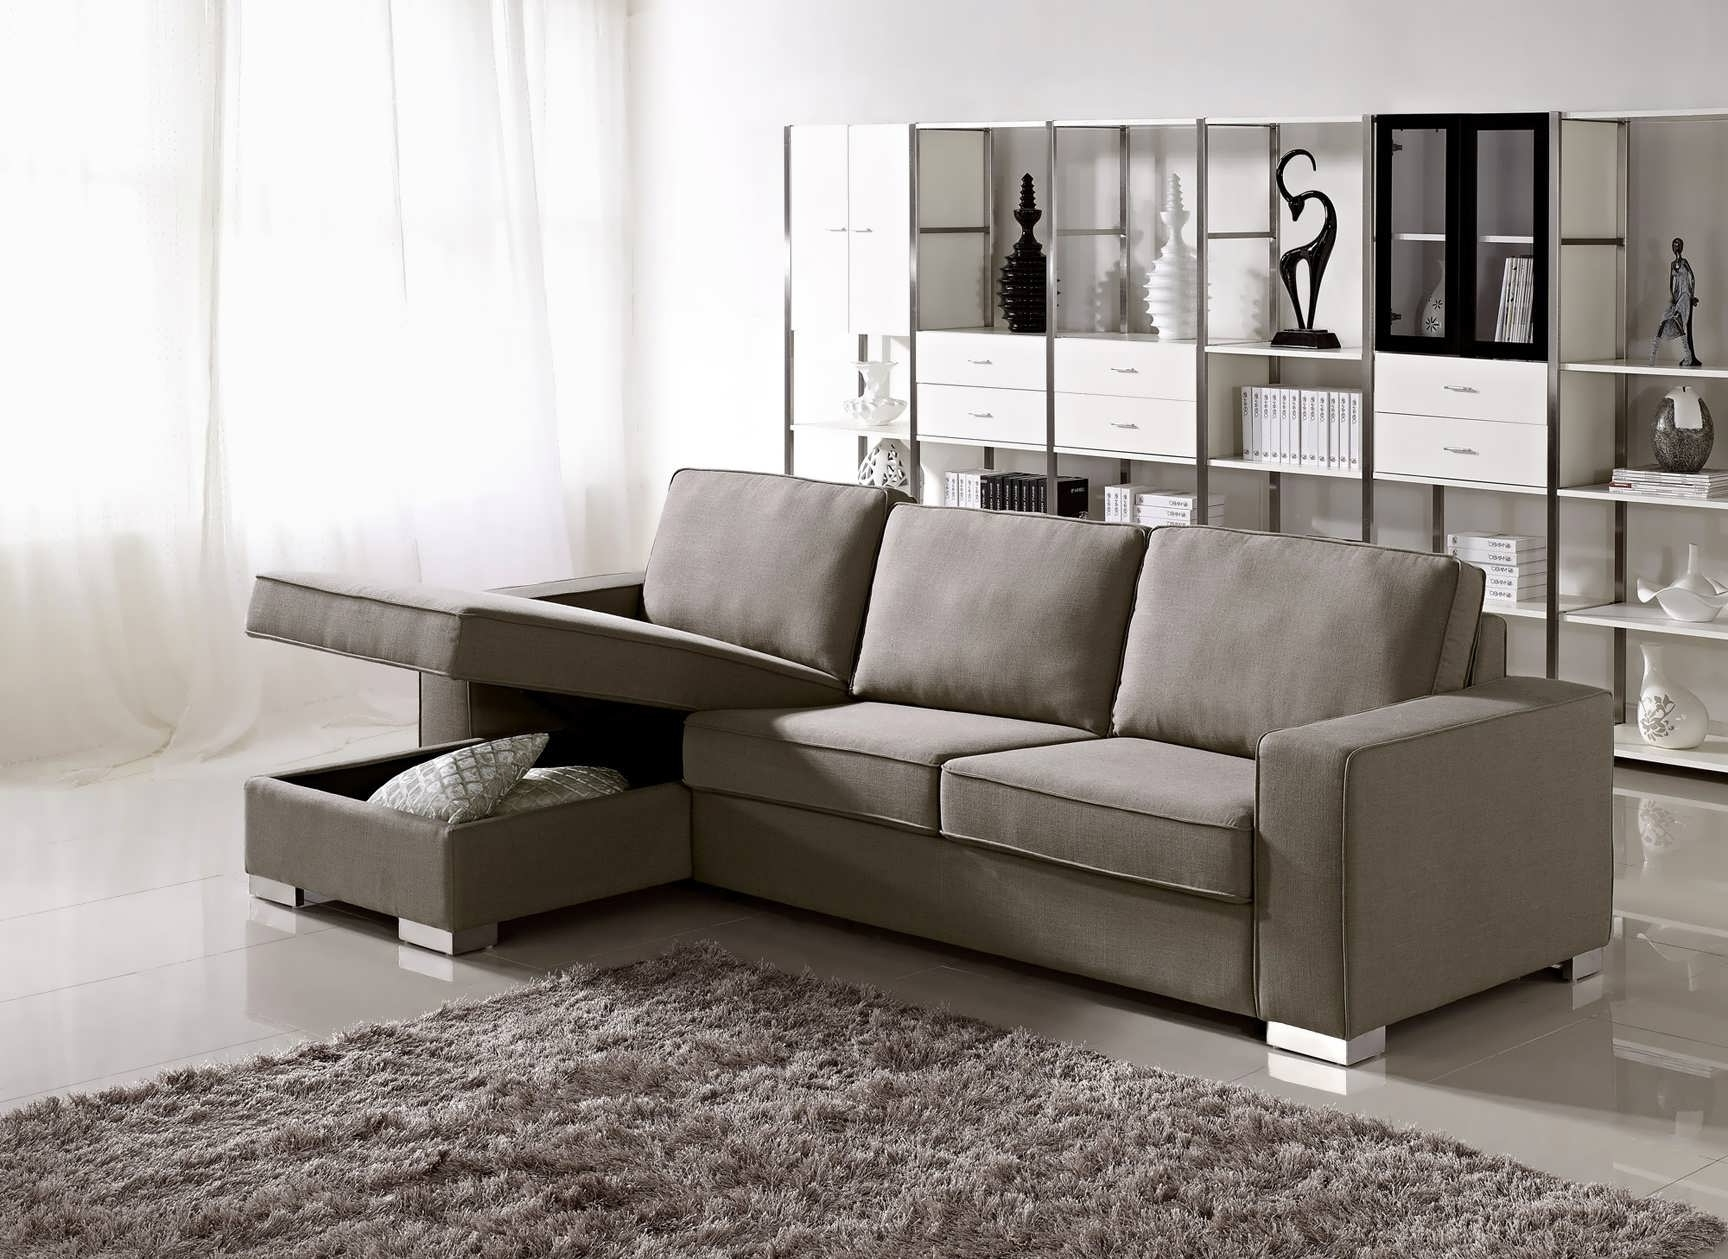 Double Chaise Sectionals For Famous Sofa : Chaise Sofa Double Chaise Sectional Small L Shaped Couch (View 10 of 15)